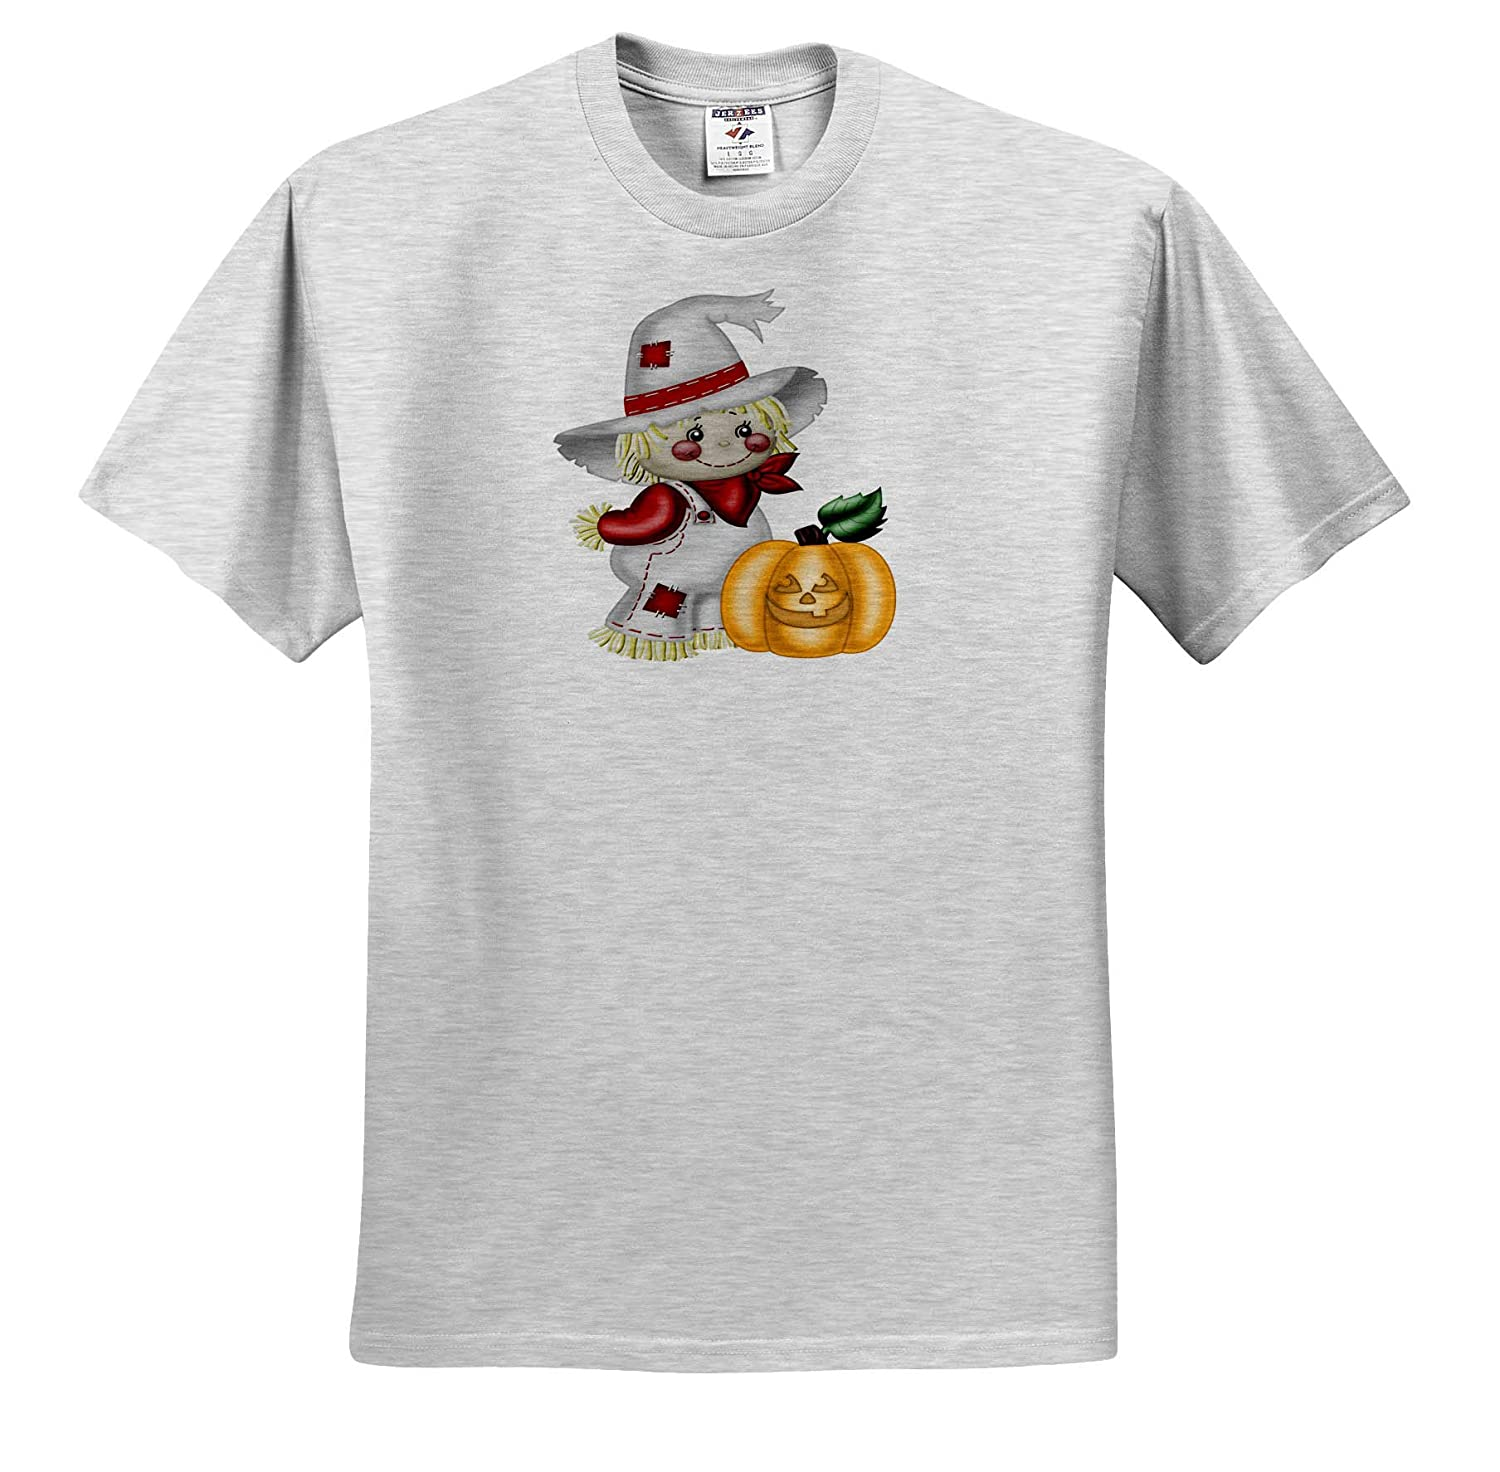 3dRose Anne Marie Baugh ts/_317966 Adult T-Shirt XL Illustrations Cute Smiling Scarecrow with A Pumpkin Illustration